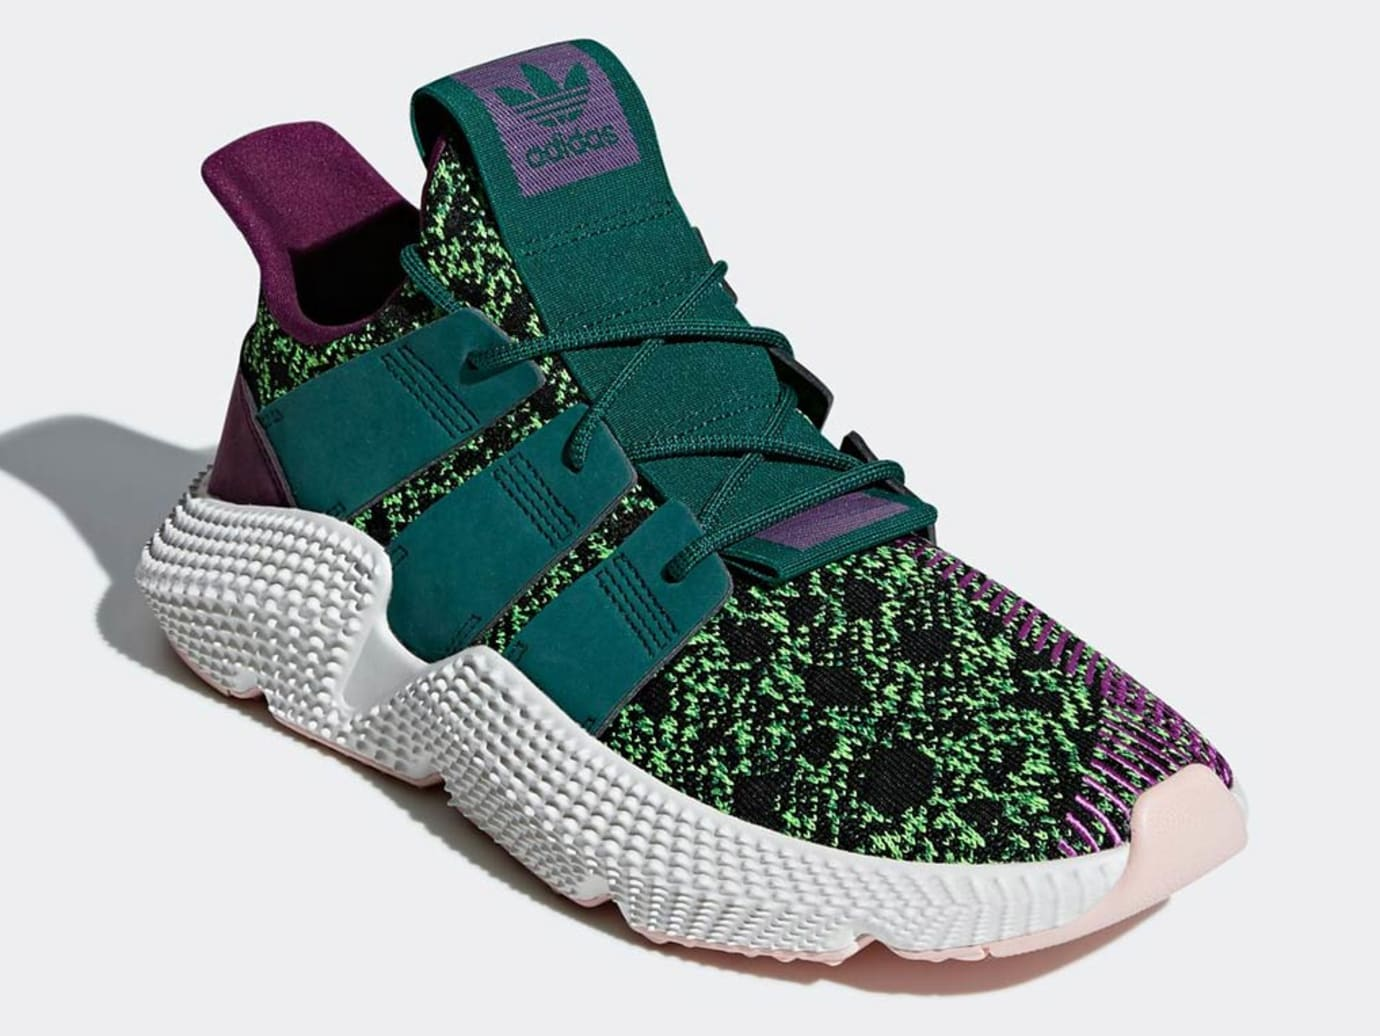 premium selection 2e876 1c146 Image via Adidas Dragon Ball Z x Adidas Prophere Cell Release Date D97053  Front